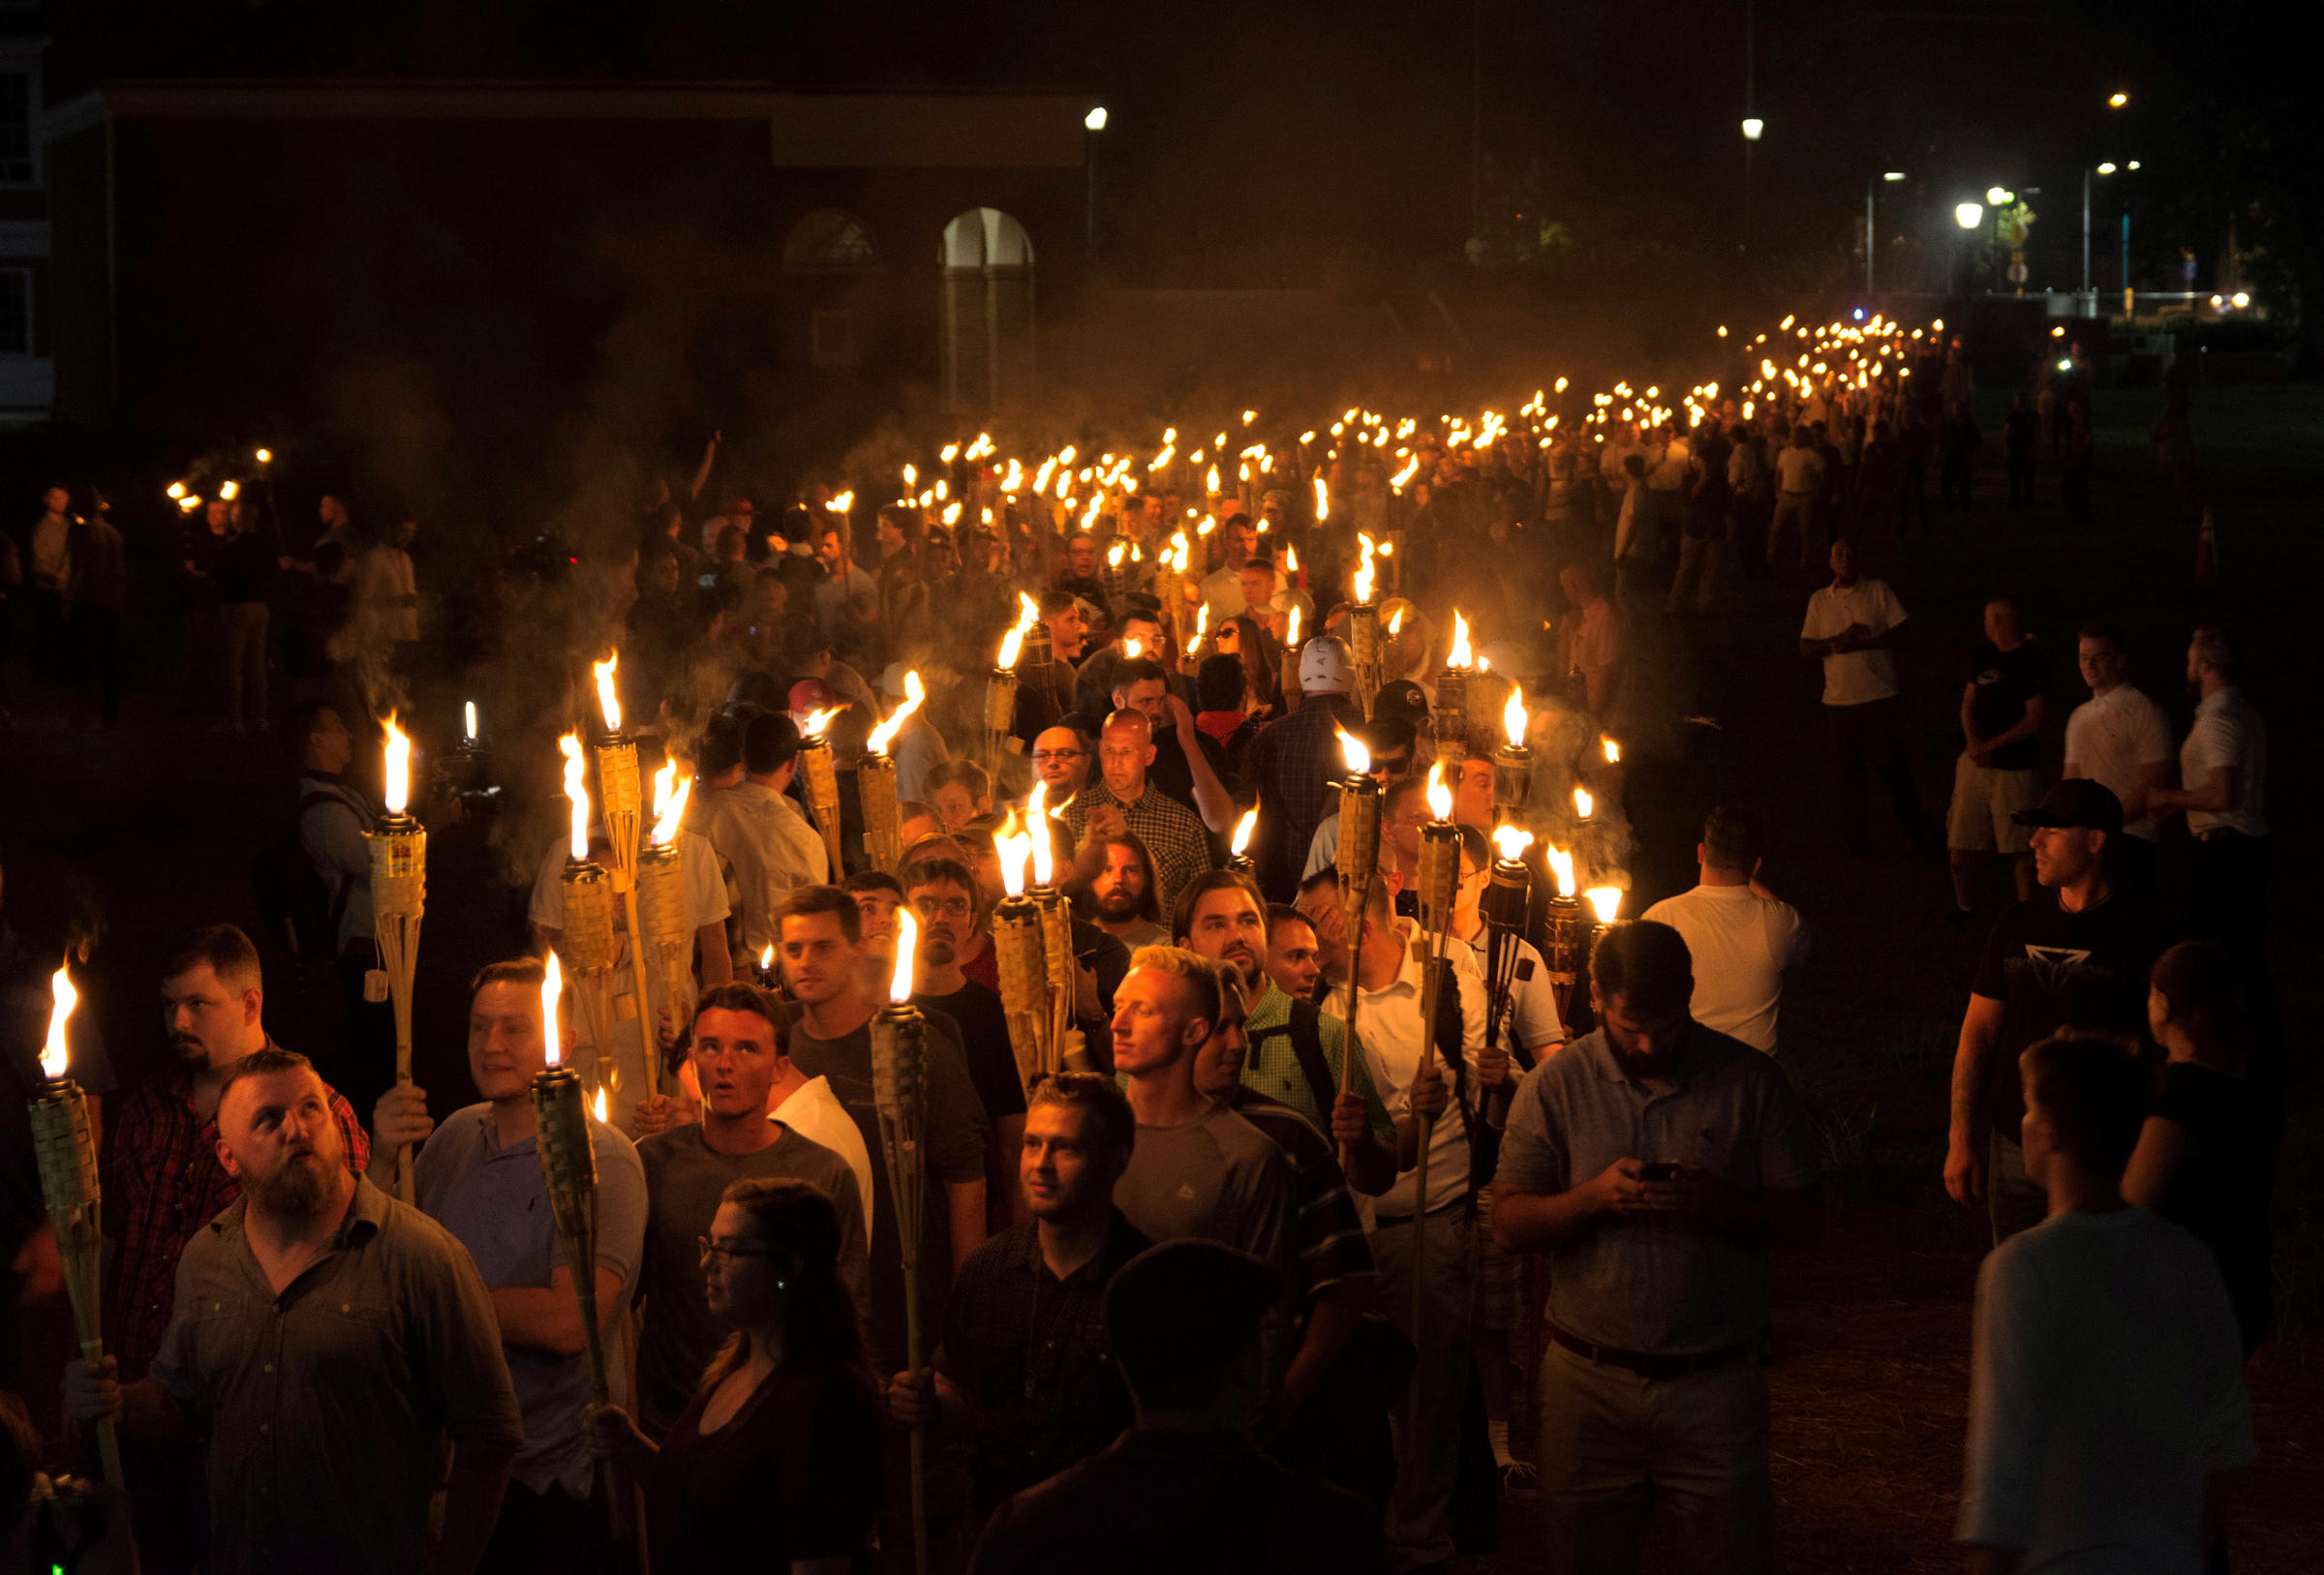 Virginia football players participate in candlelight vigil in Charlottesville